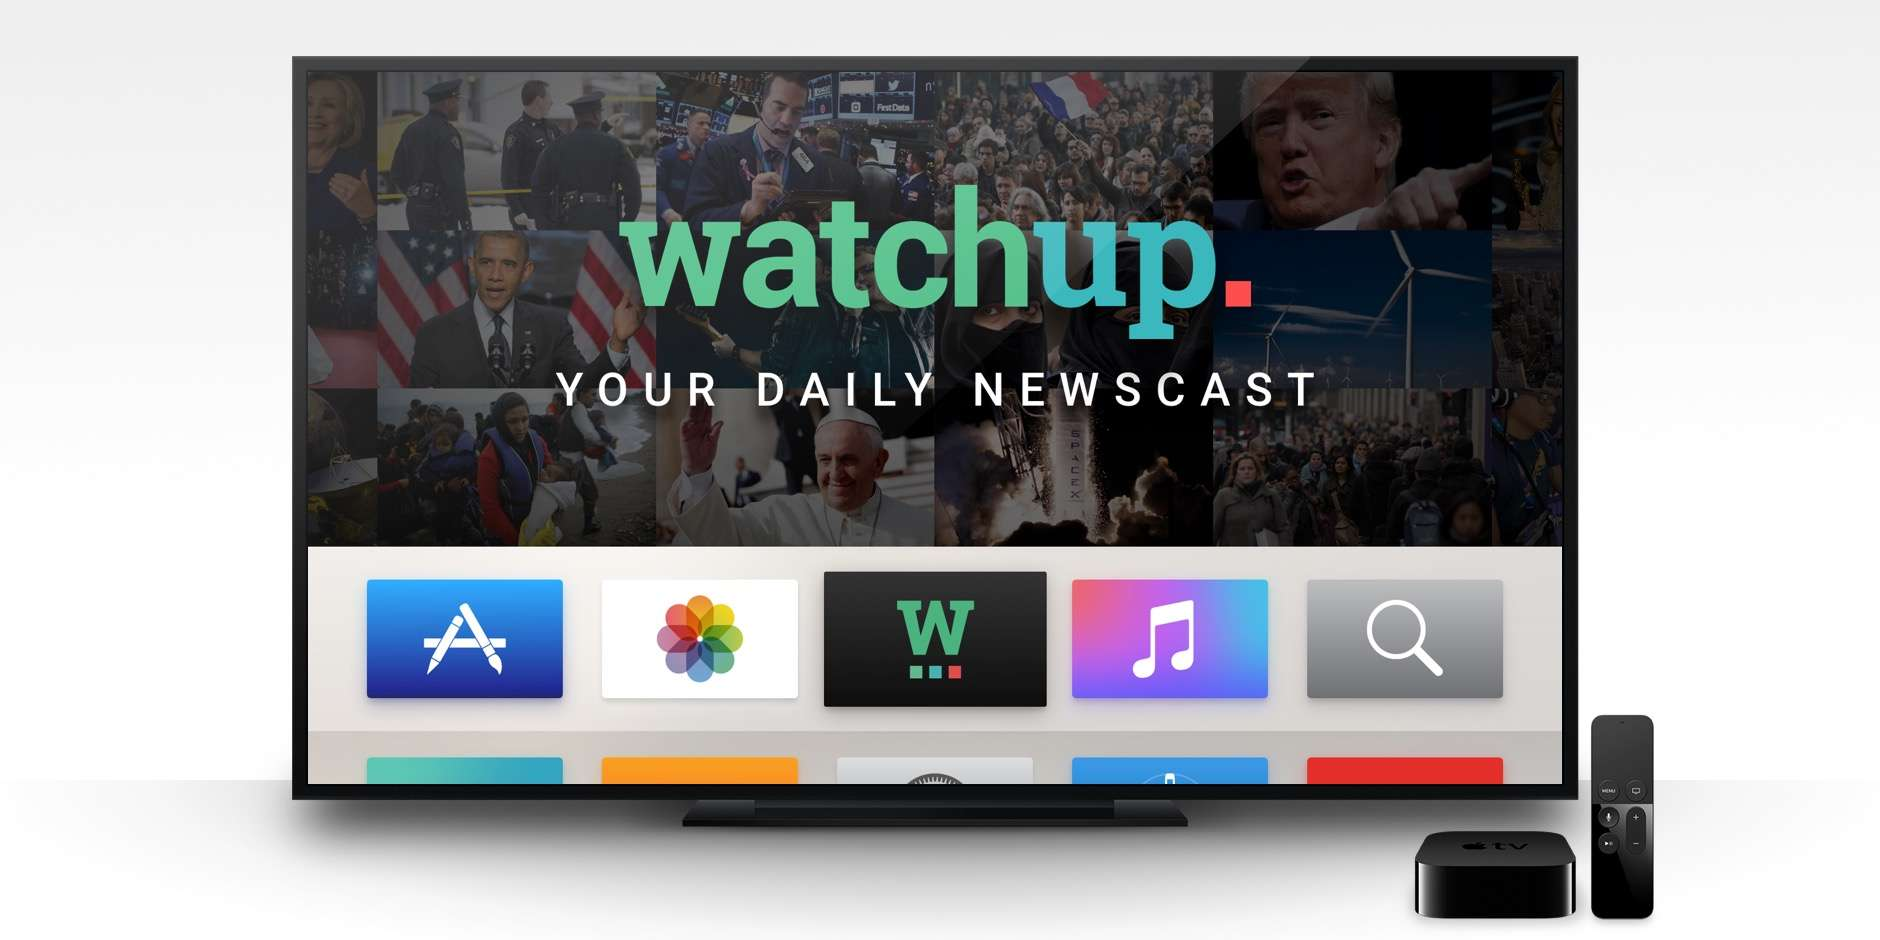 Get all your news, sans cable package, right on your Apple TV.